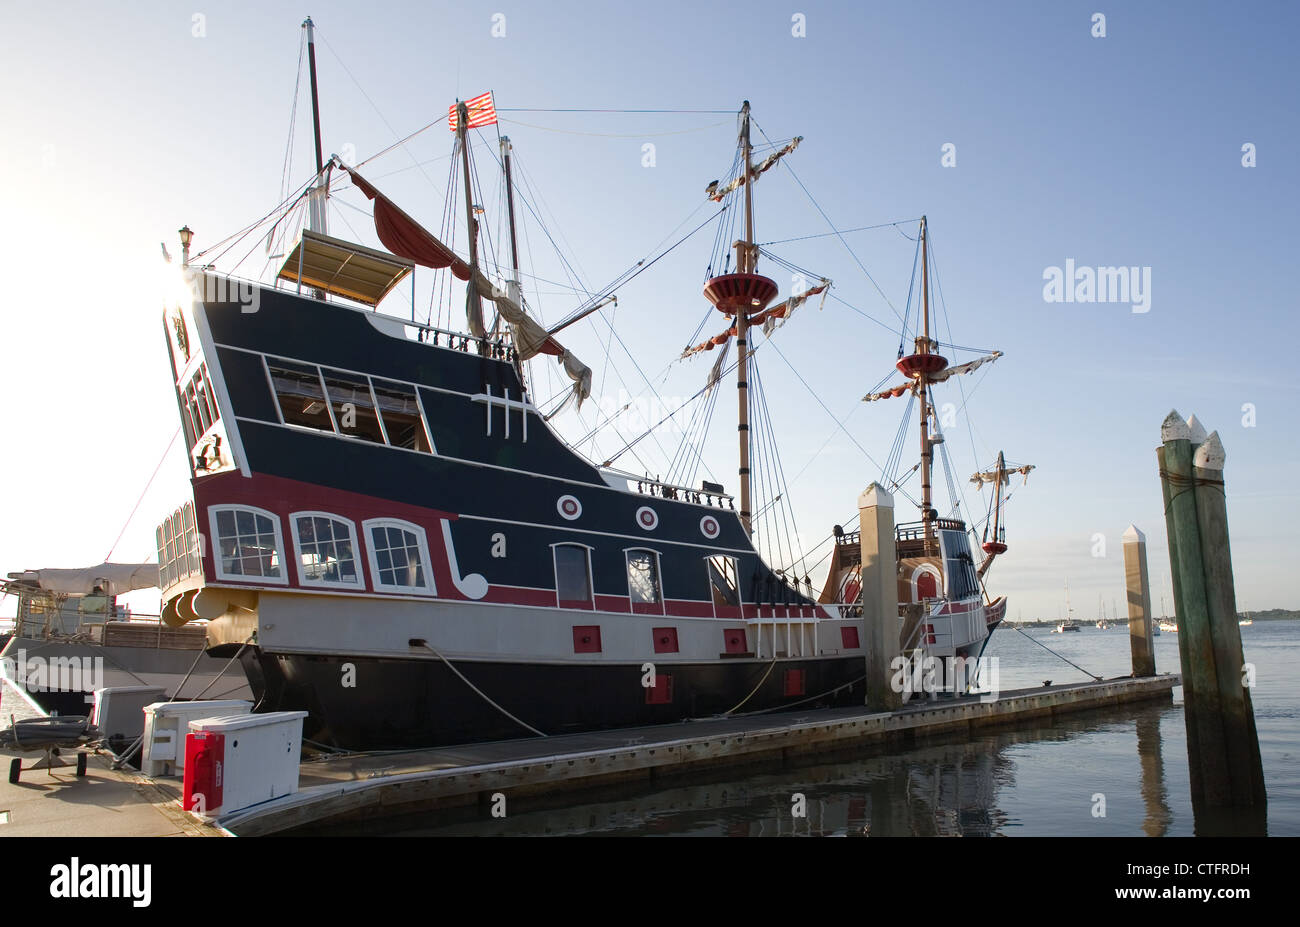 The Black Raven Pirate Ship in St. Augustine, Florida - Stock Image